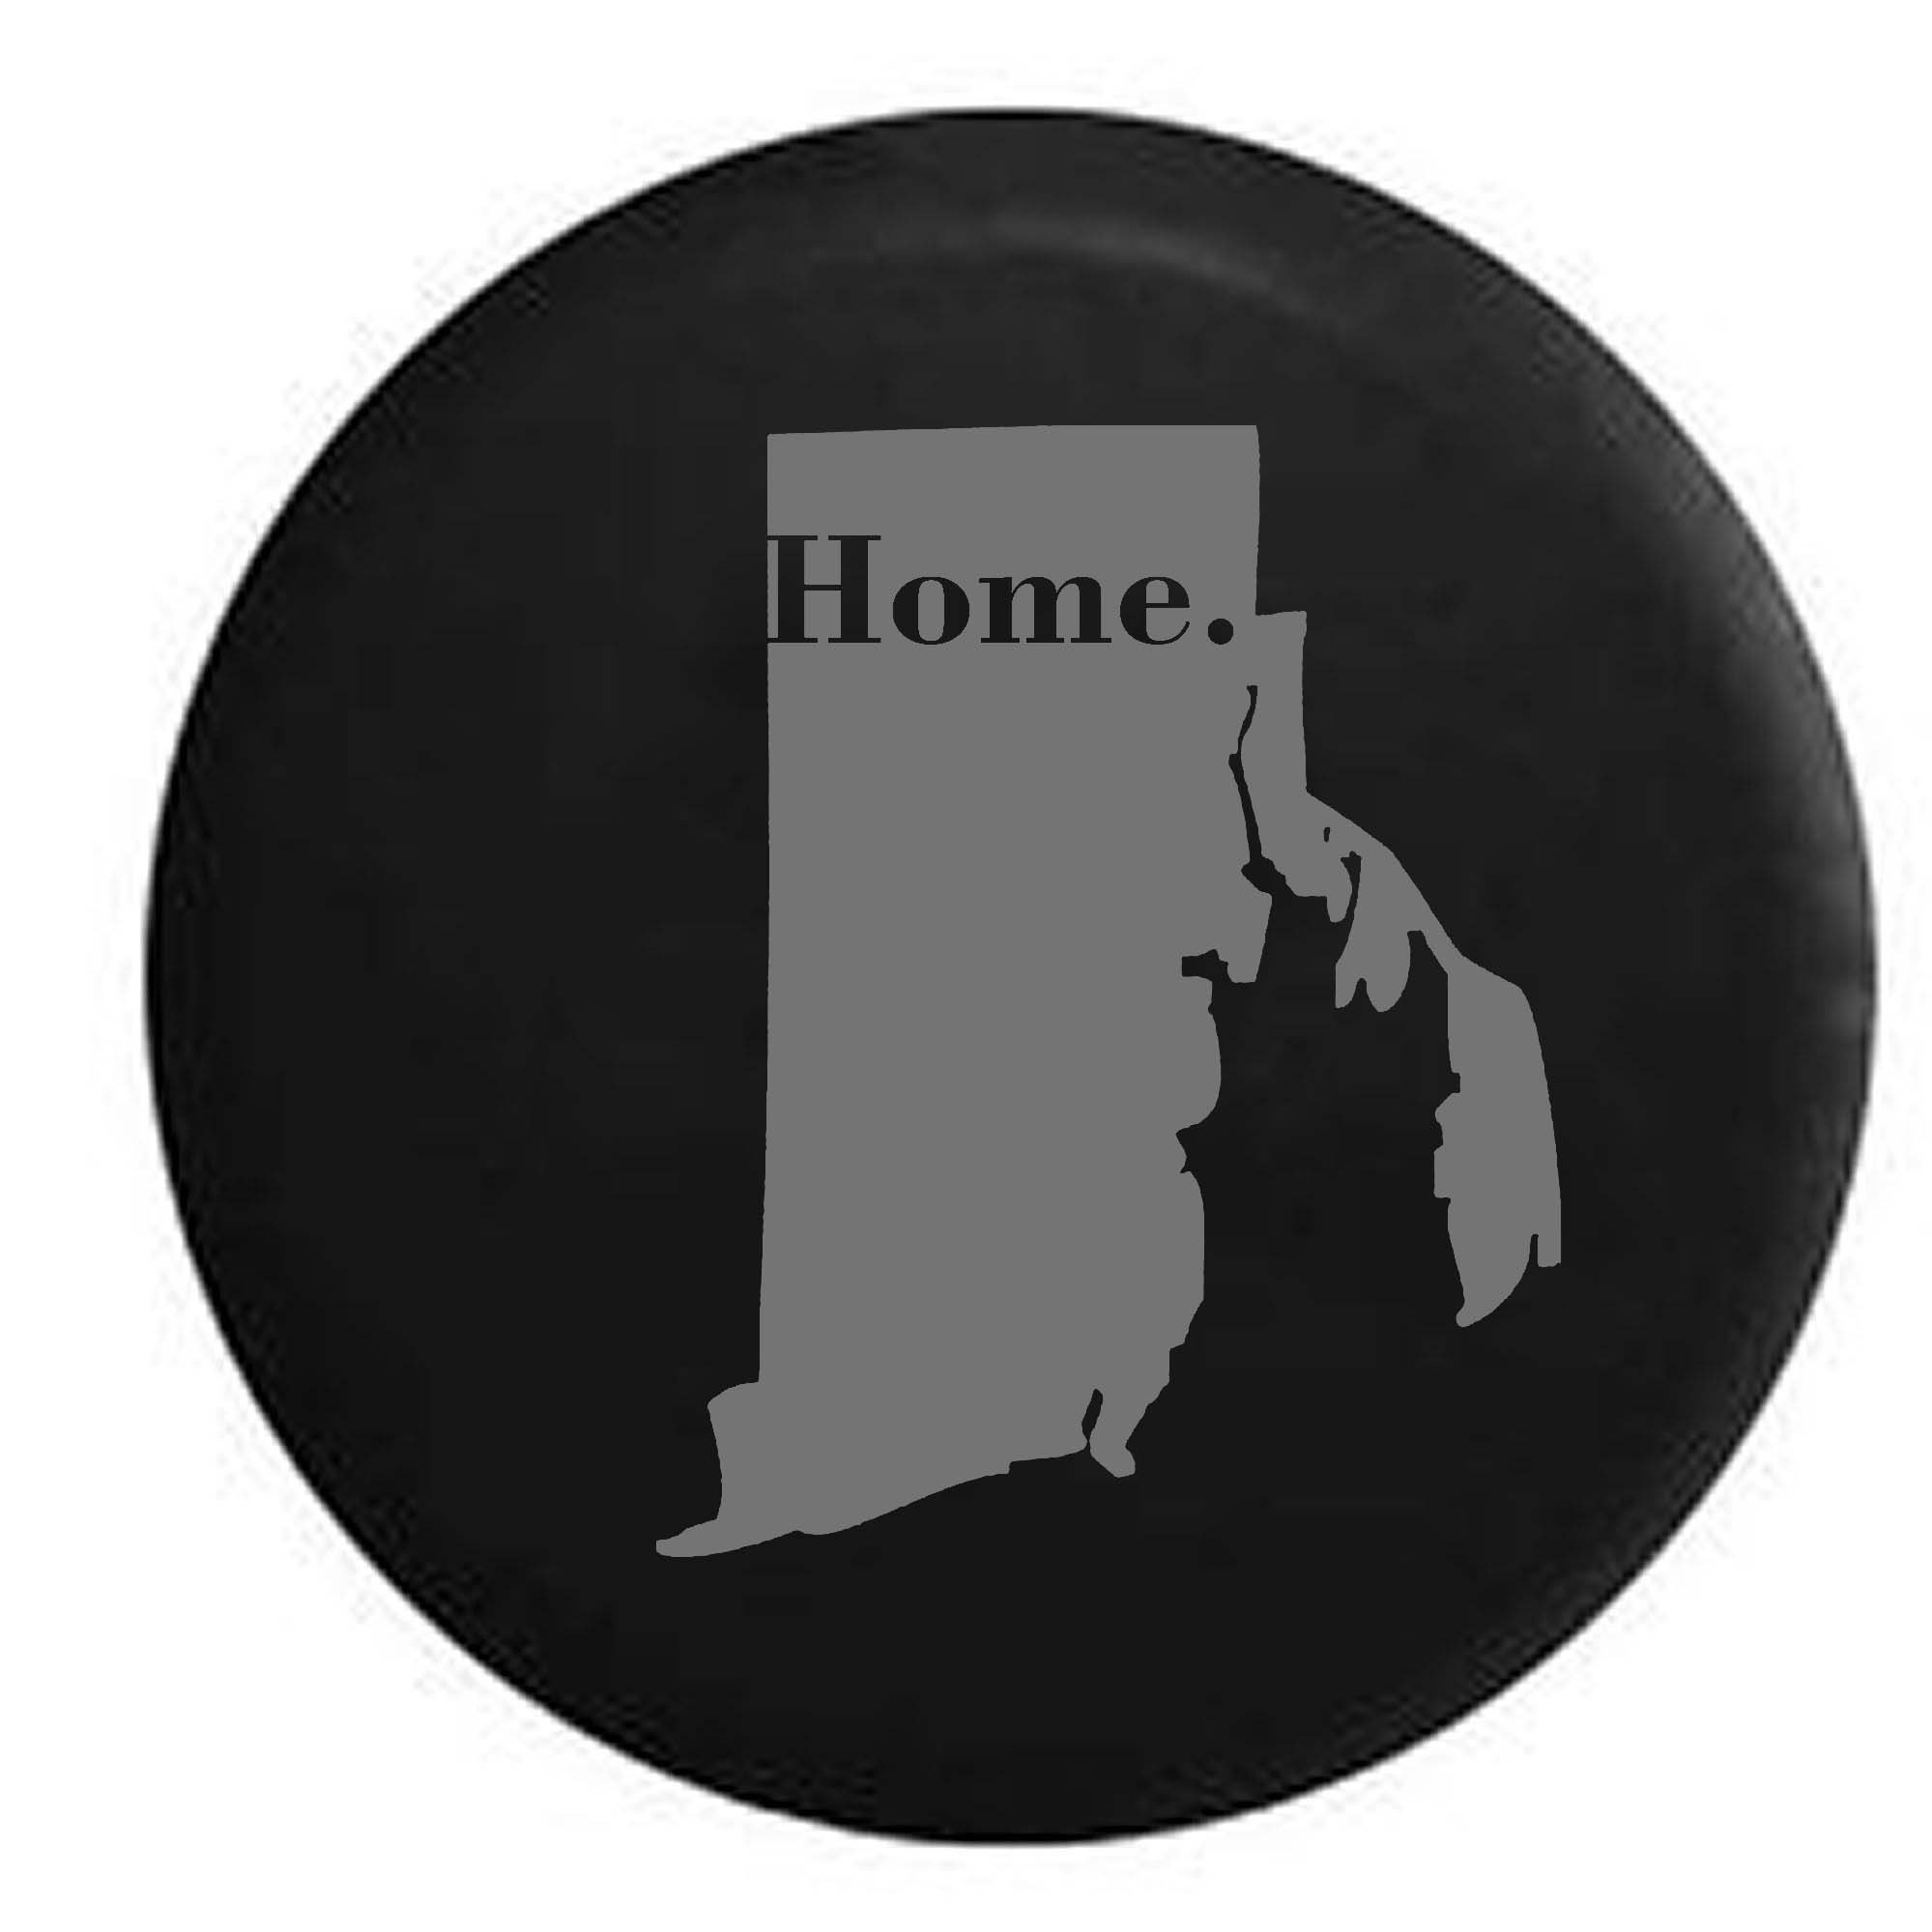 Pike Stealth - Rhode Island Home State Edition RV Spare Tire Cover OEM Vinyl Black 29 in